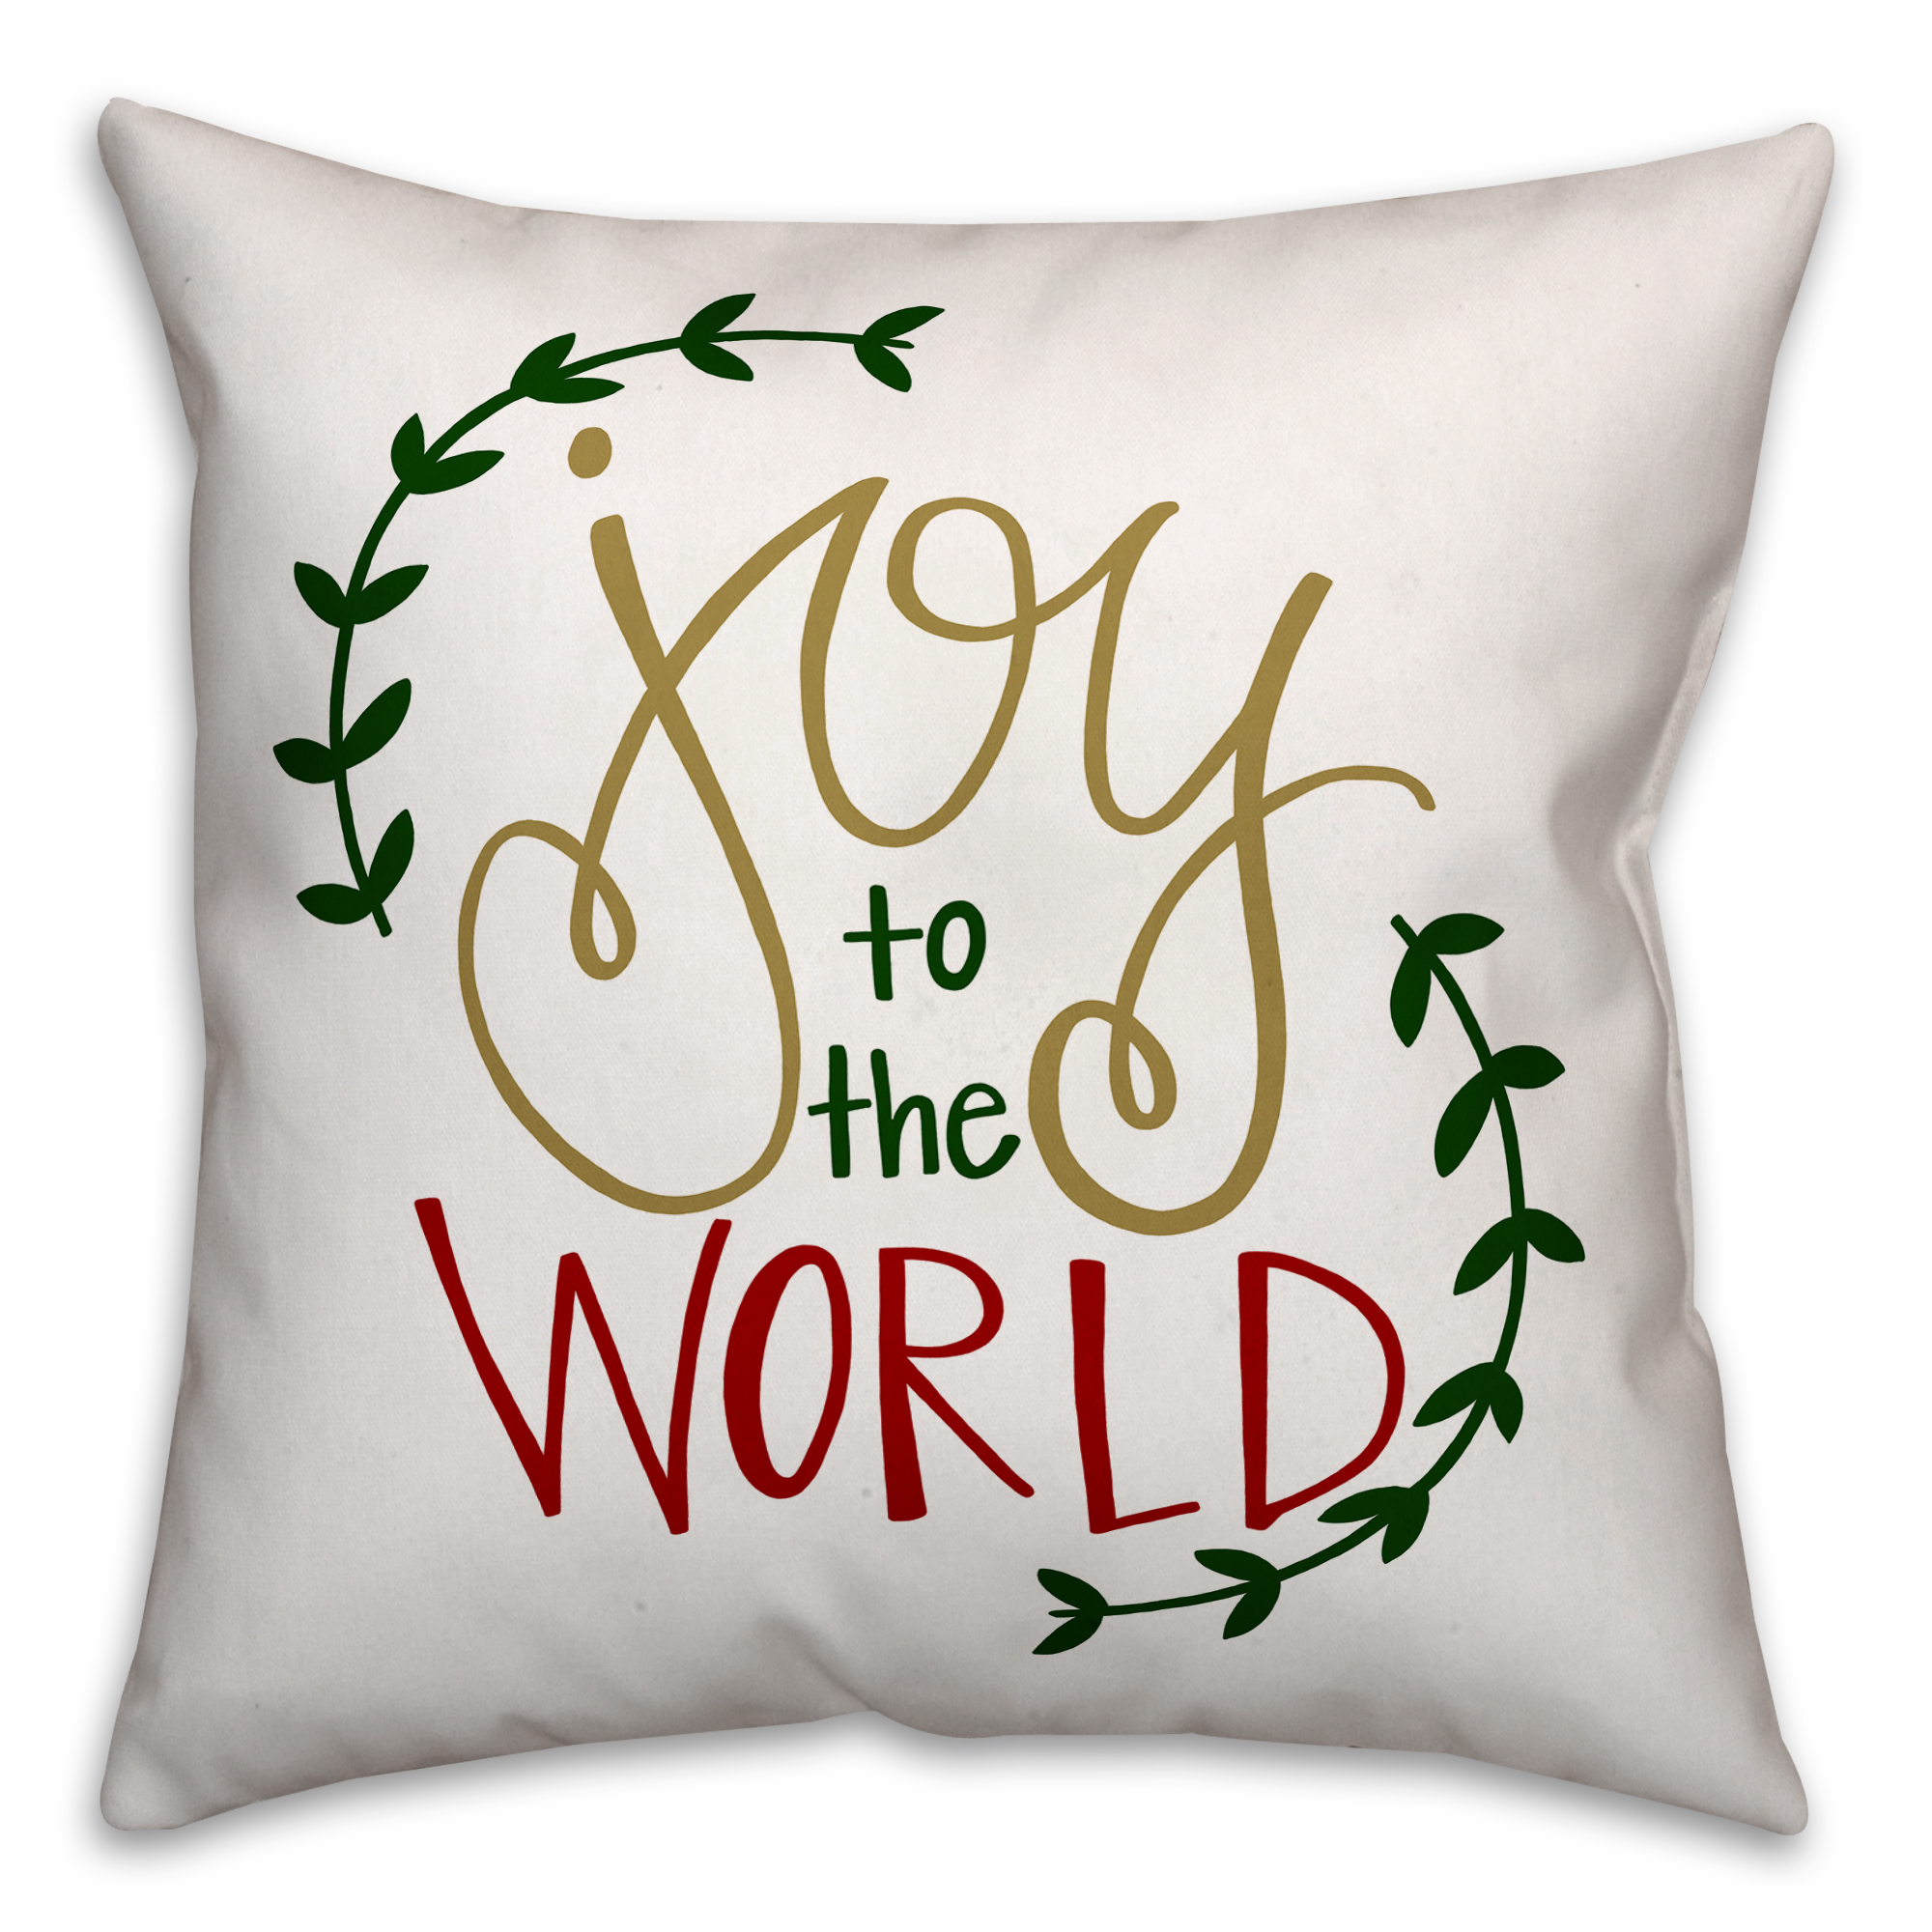 Joy to the World 18x18 Spun Poly Pillow